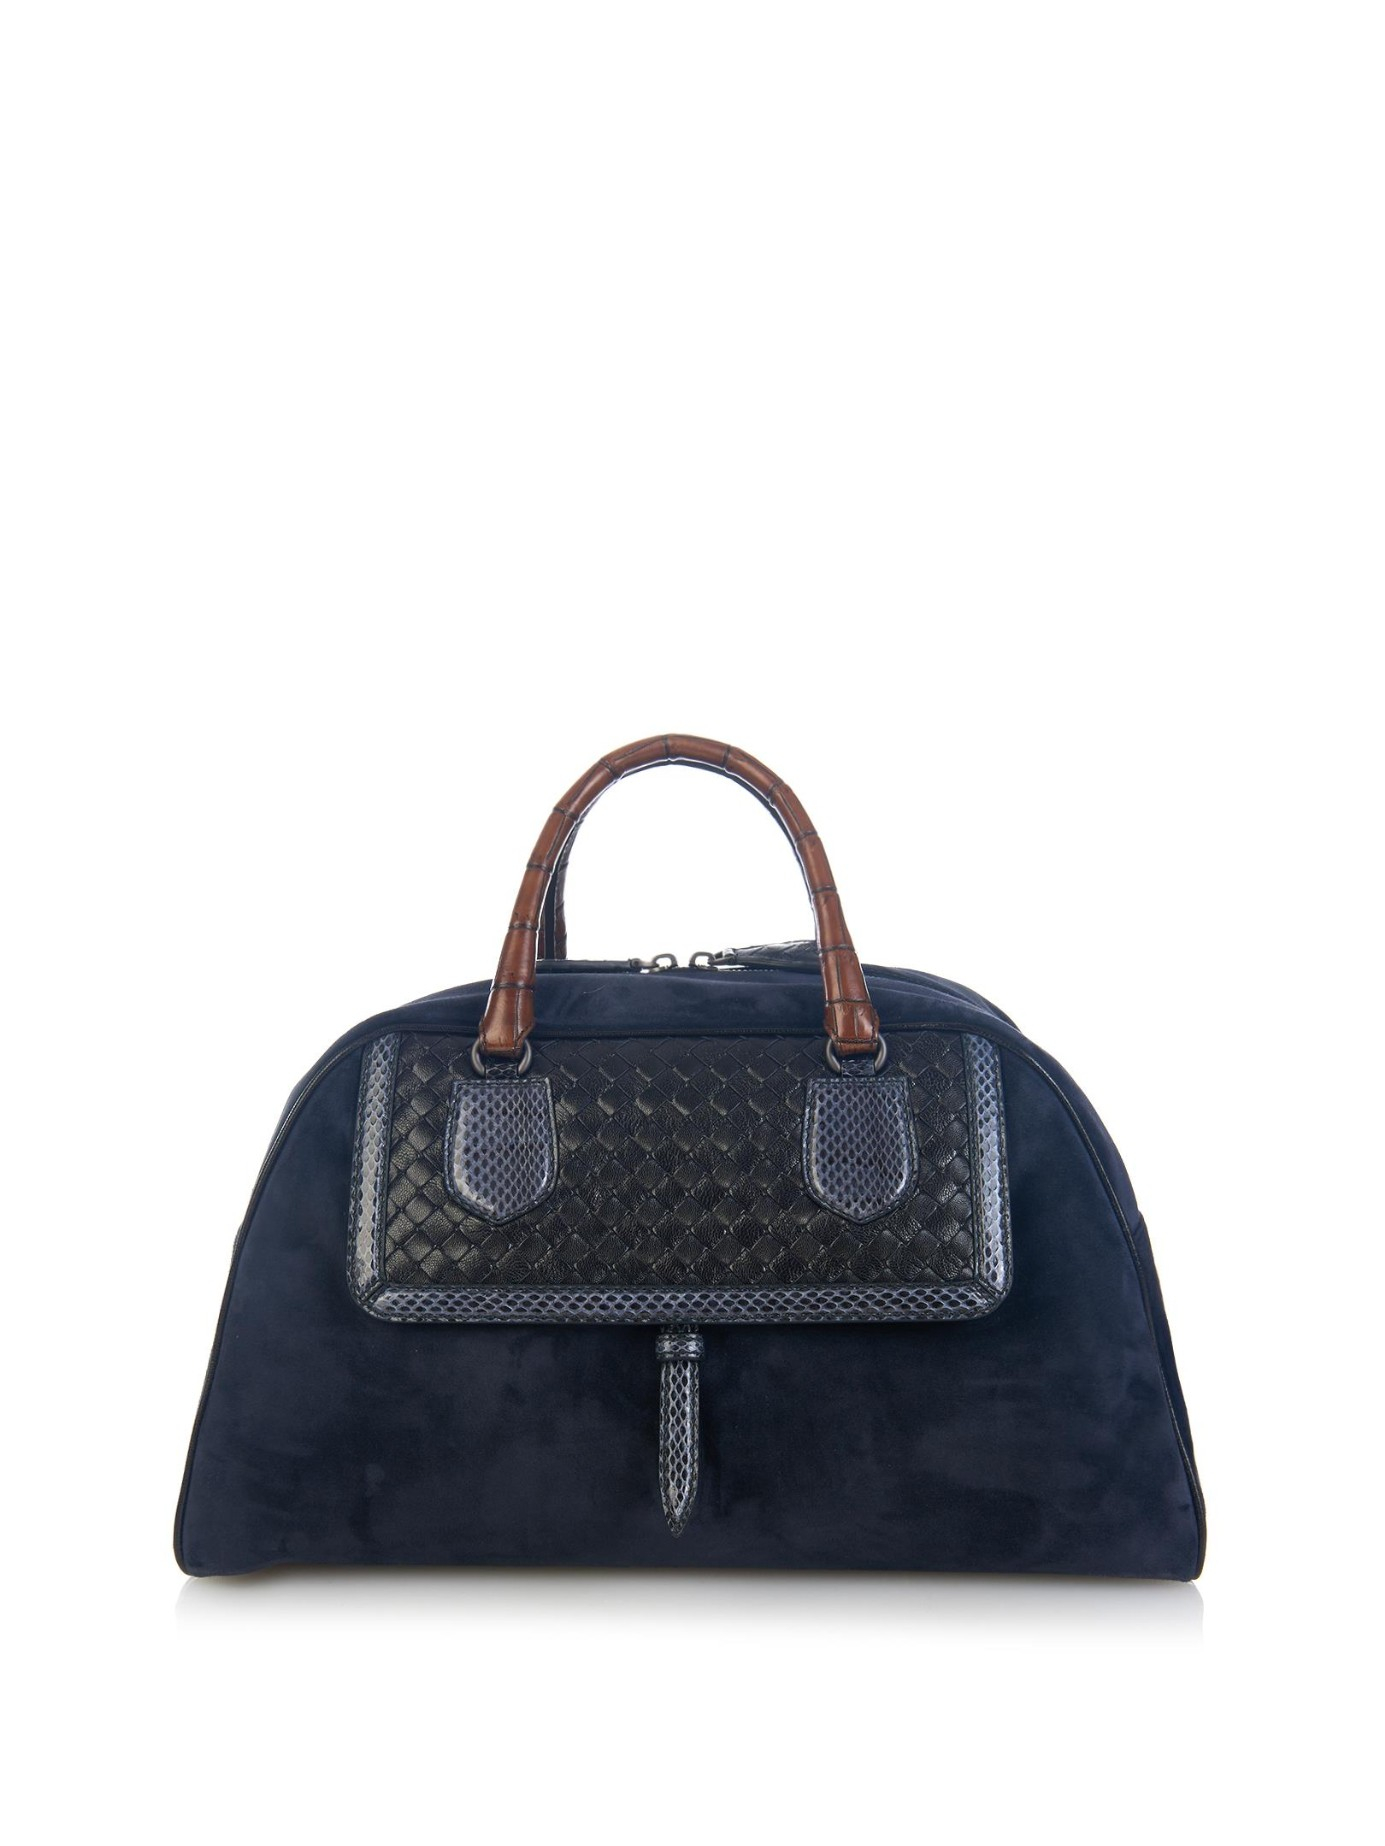 fae1dcf2a072 Gallery. Previously sold at  MATCHESFASHION.COM · Women s Bowling Bags  Women s Prada ...